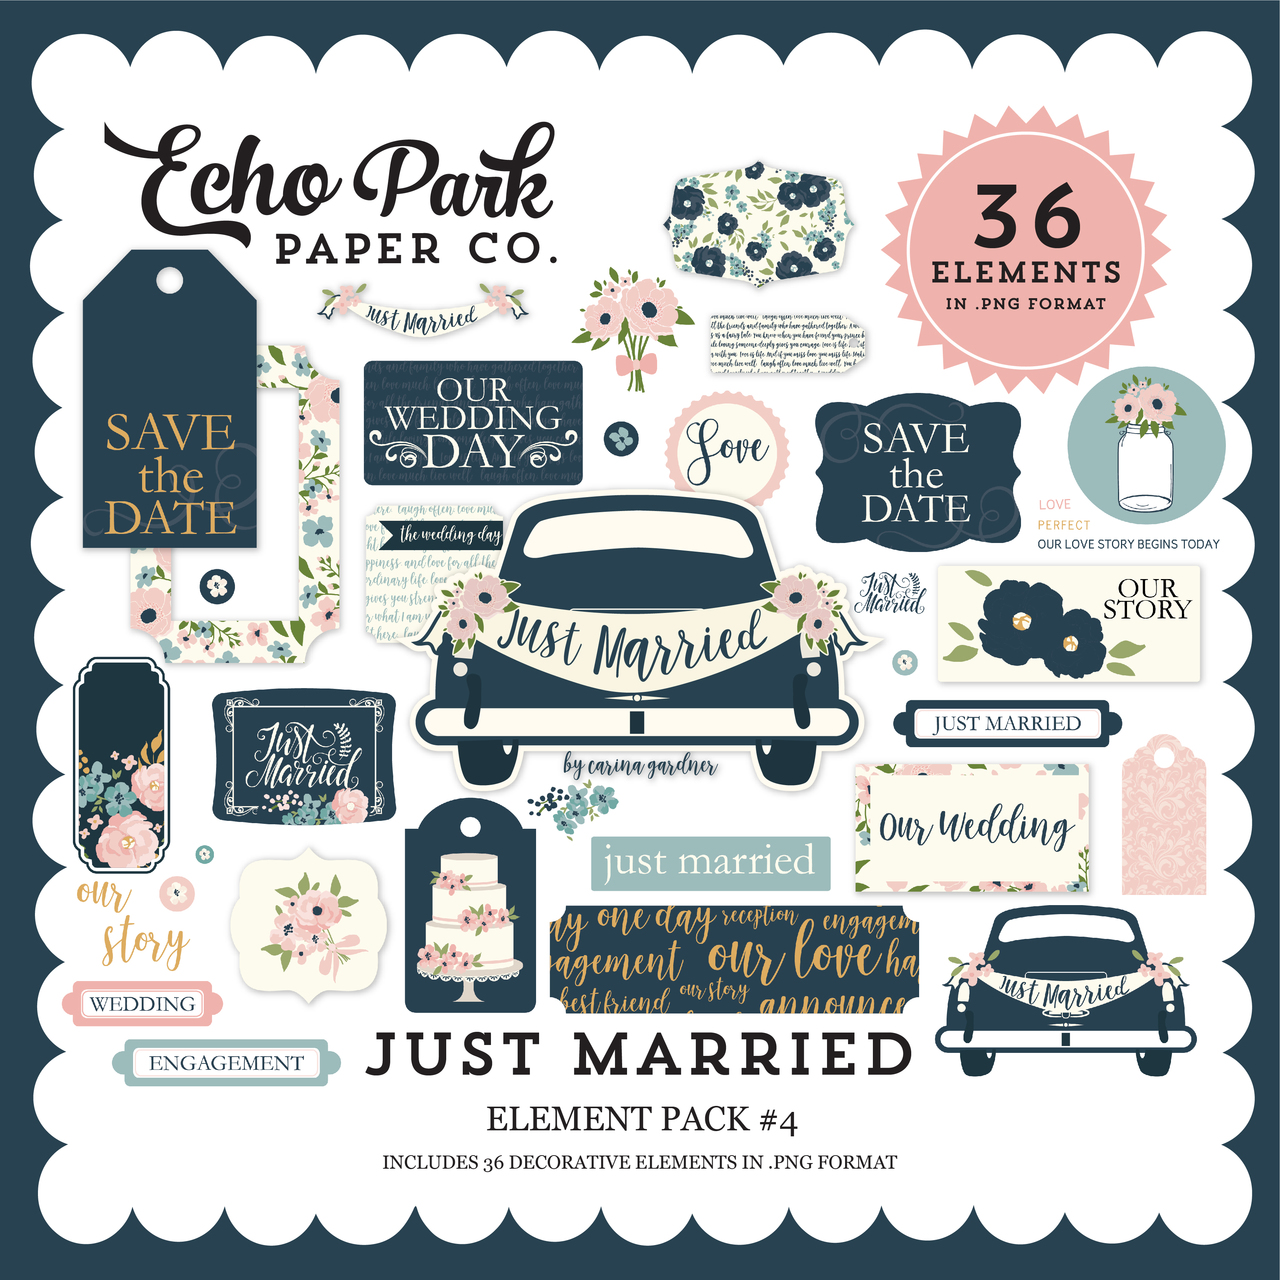 Just Married Element Pack #4